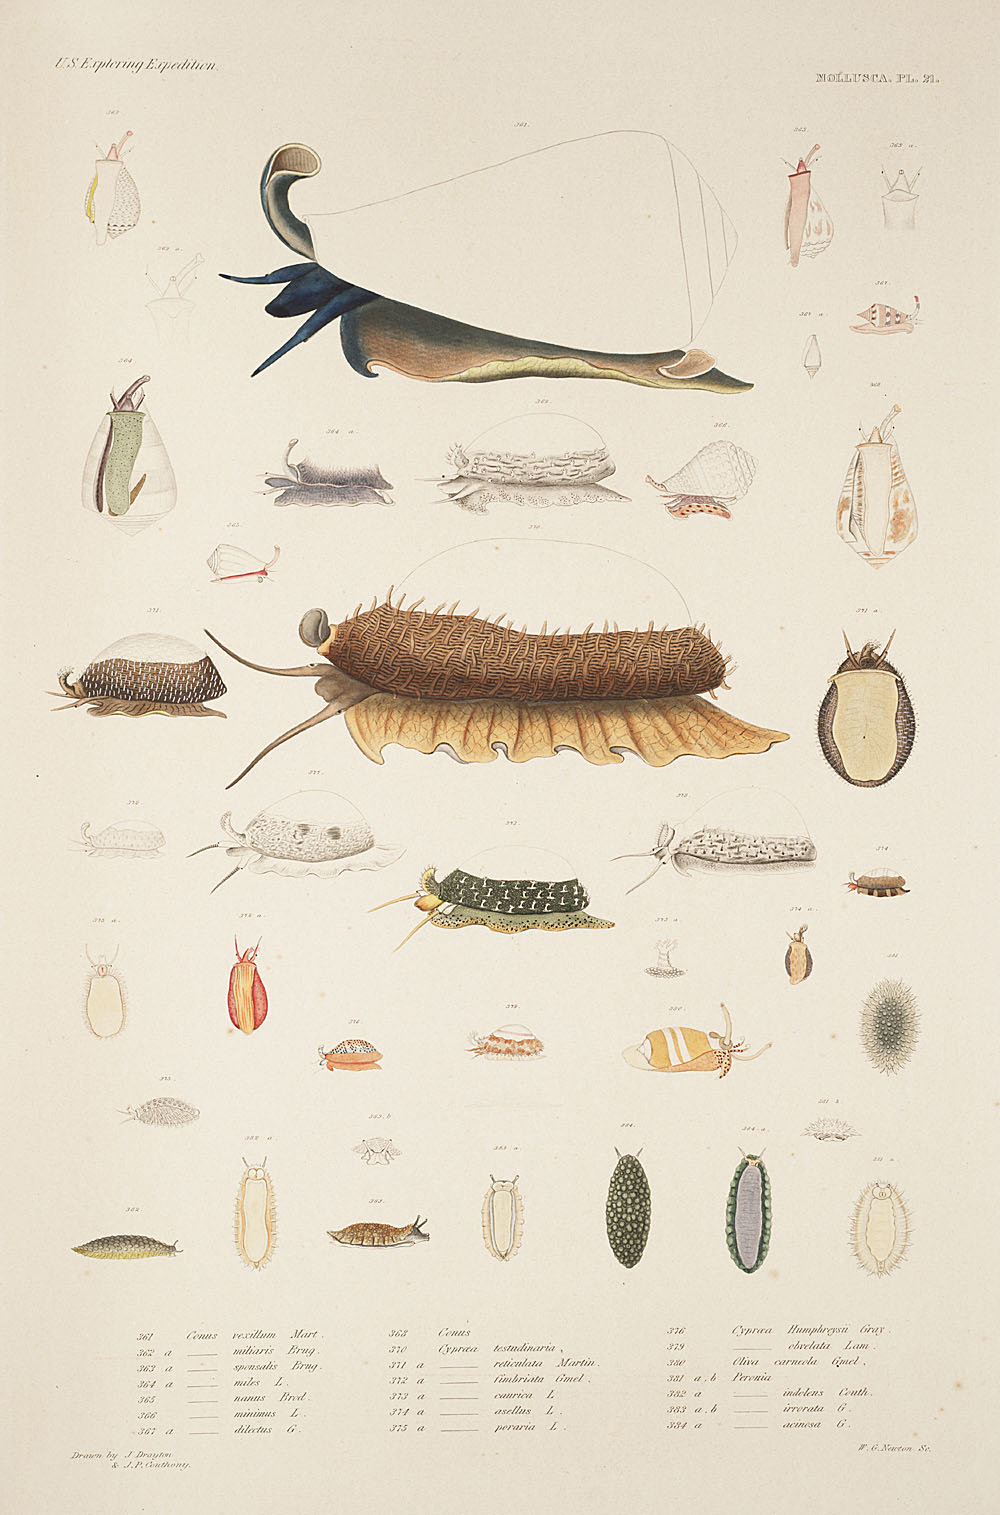 Mollusca, Pl. 21,  Image number:sil19-18-063b